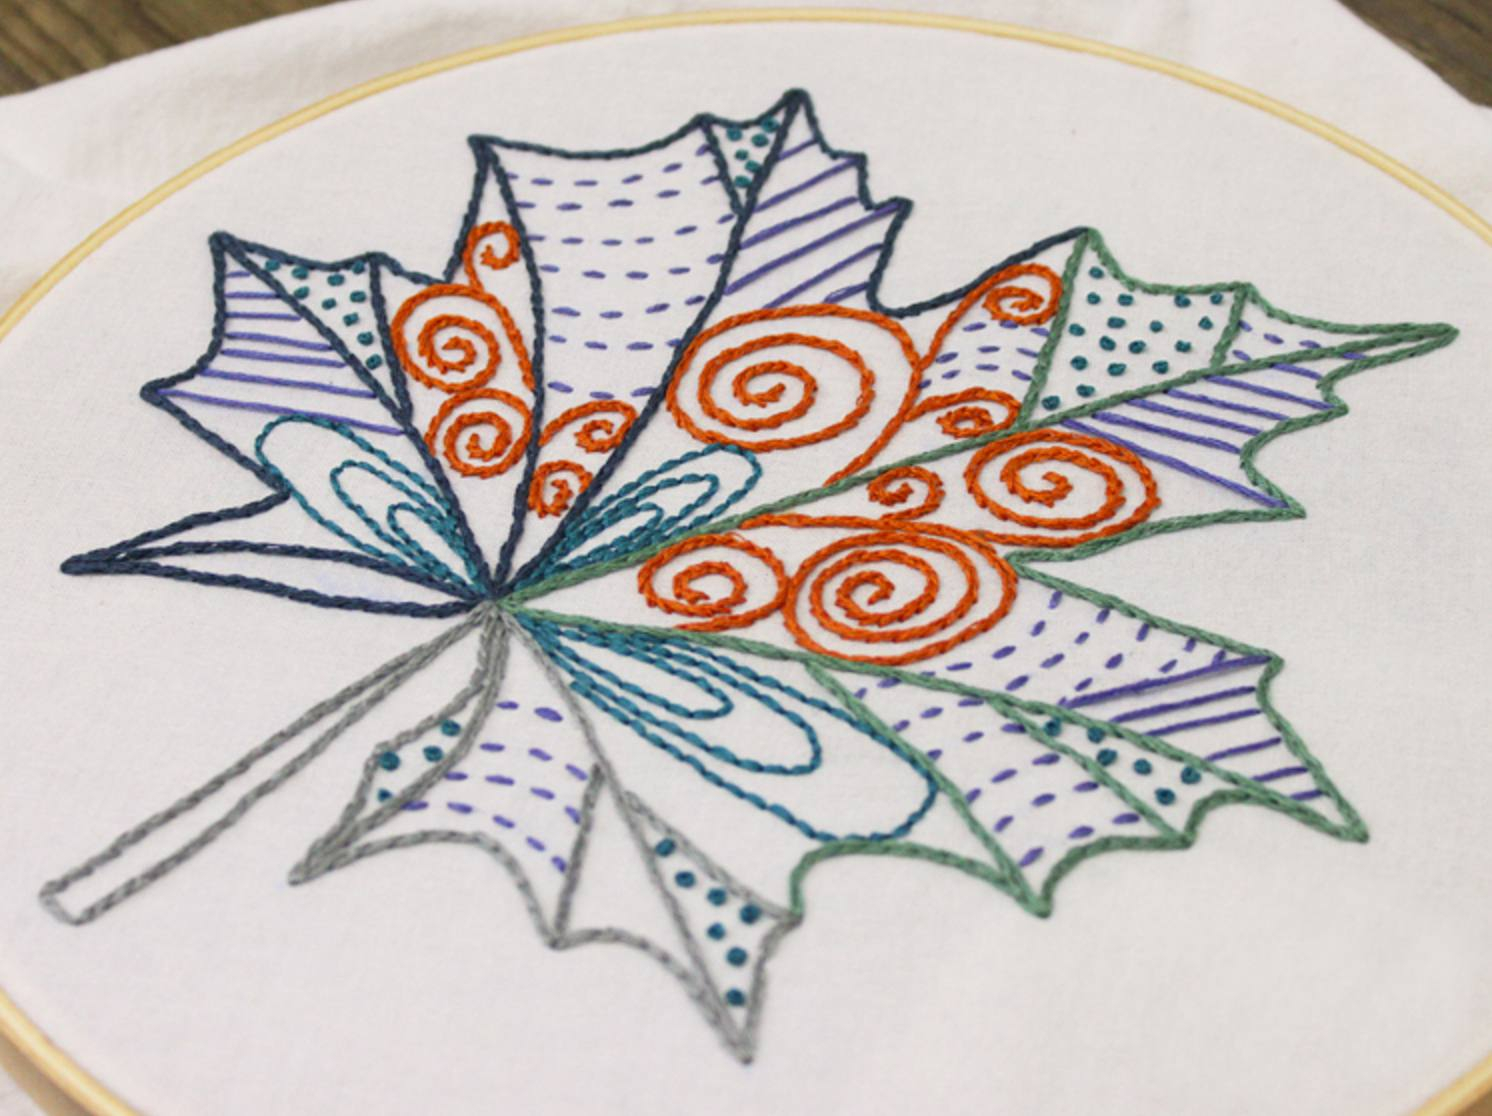 Embroidery Designs Patterns 10 Hand Embroidery Patterns For Autumn Stitching